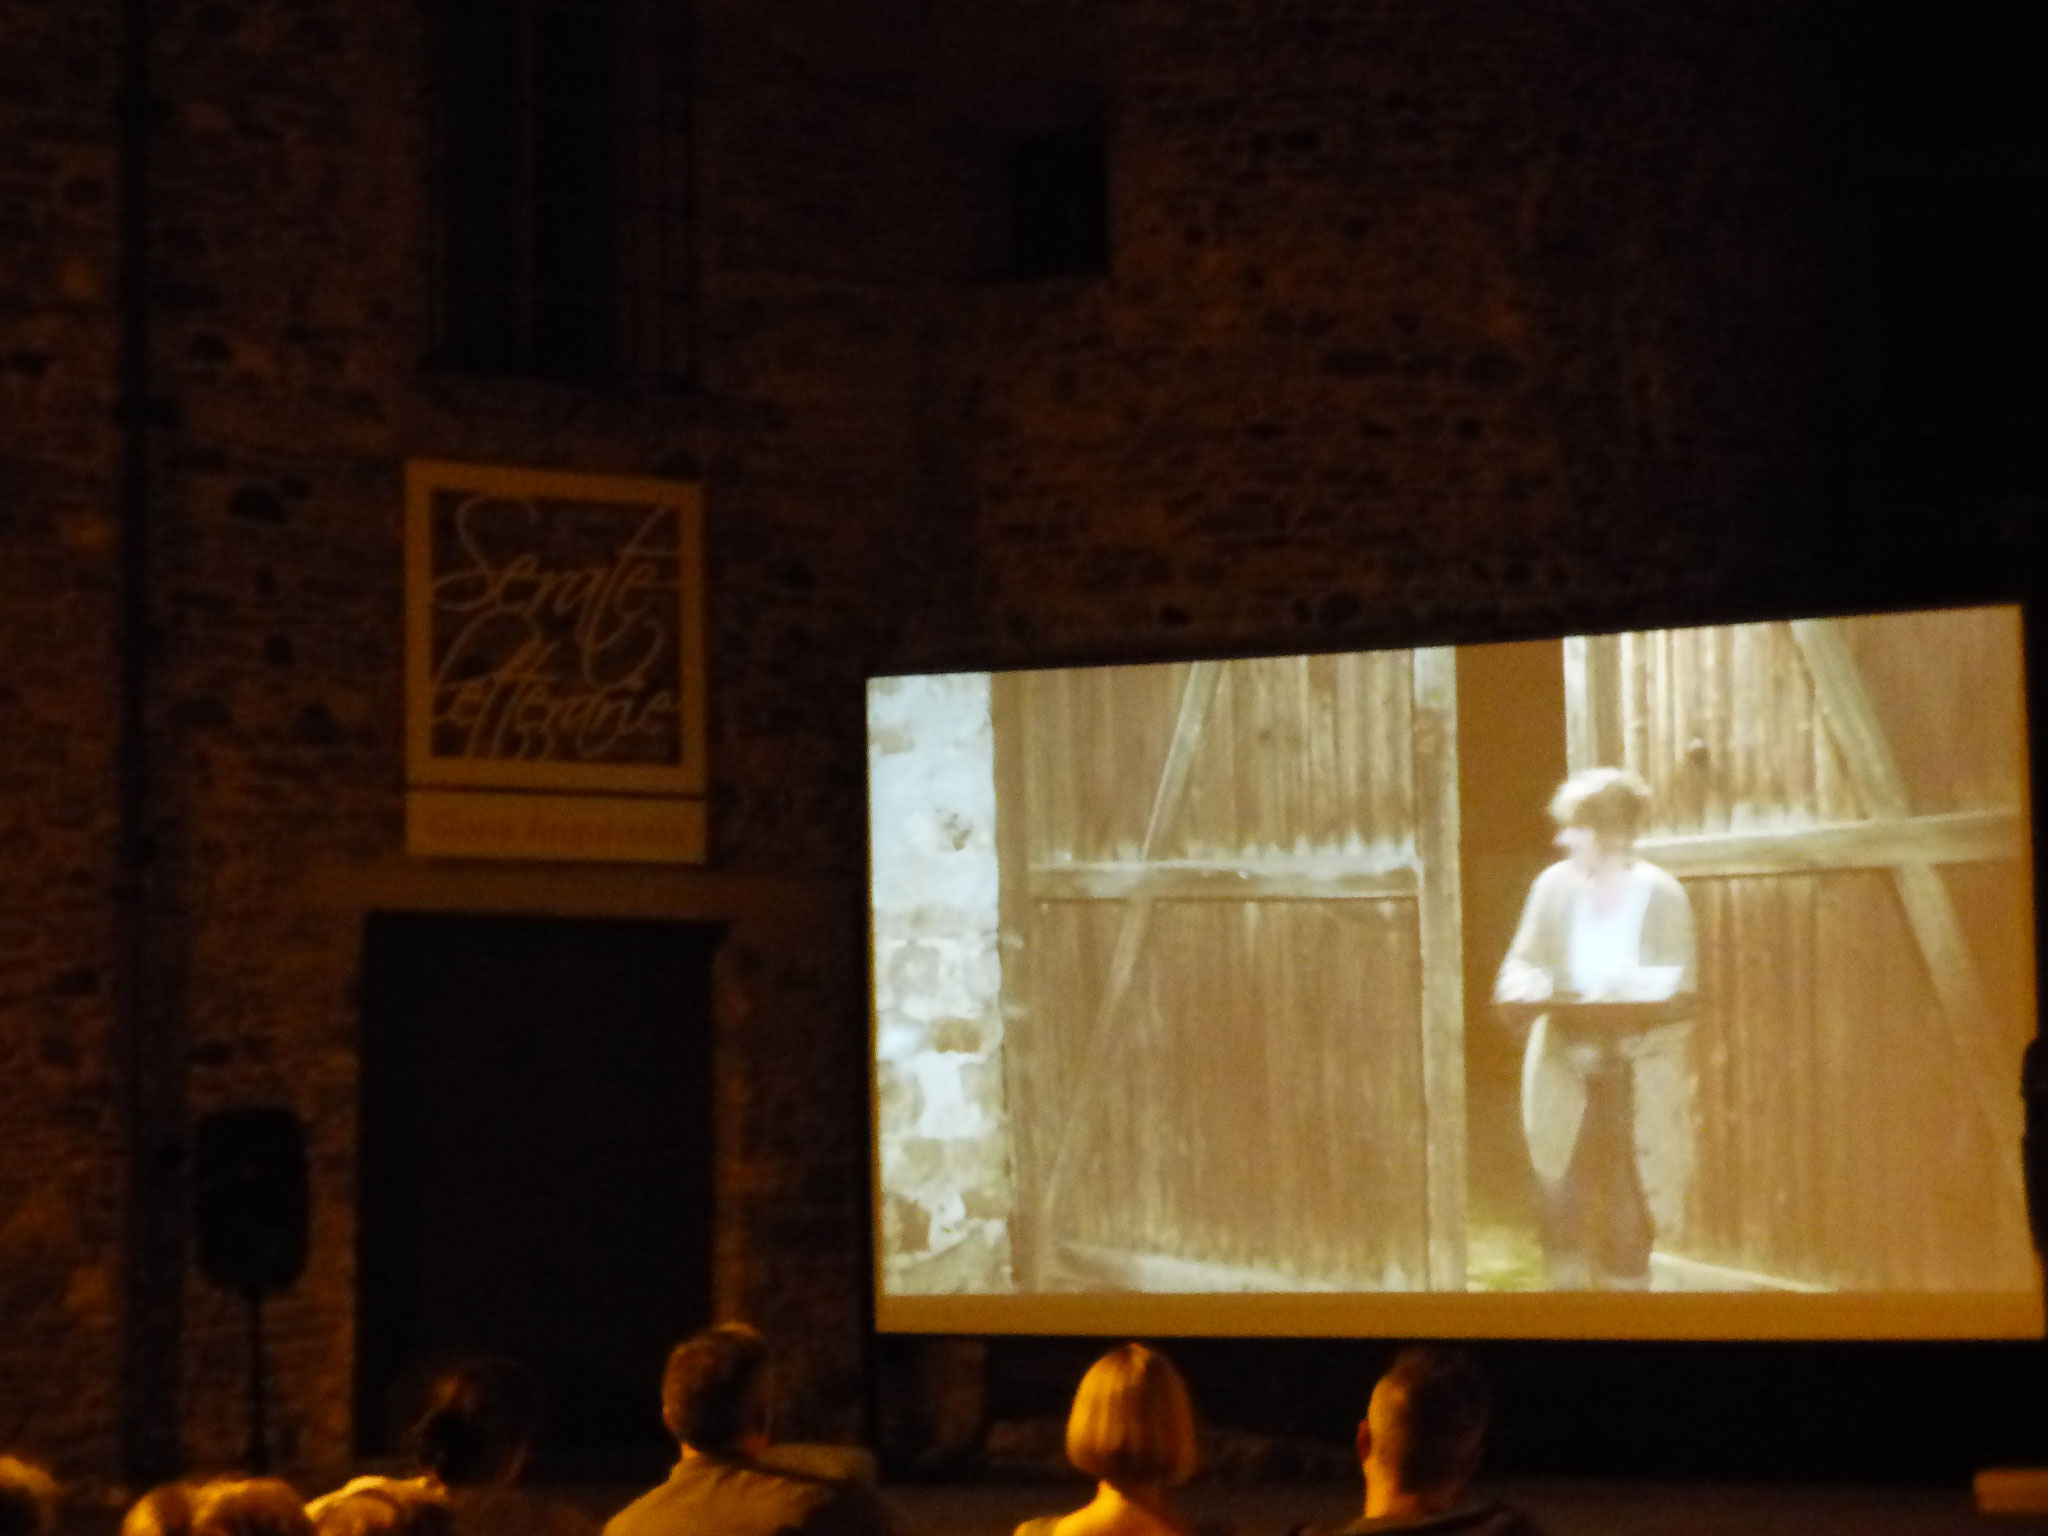 Travo cinema sotto le stelle 6-7 agosto